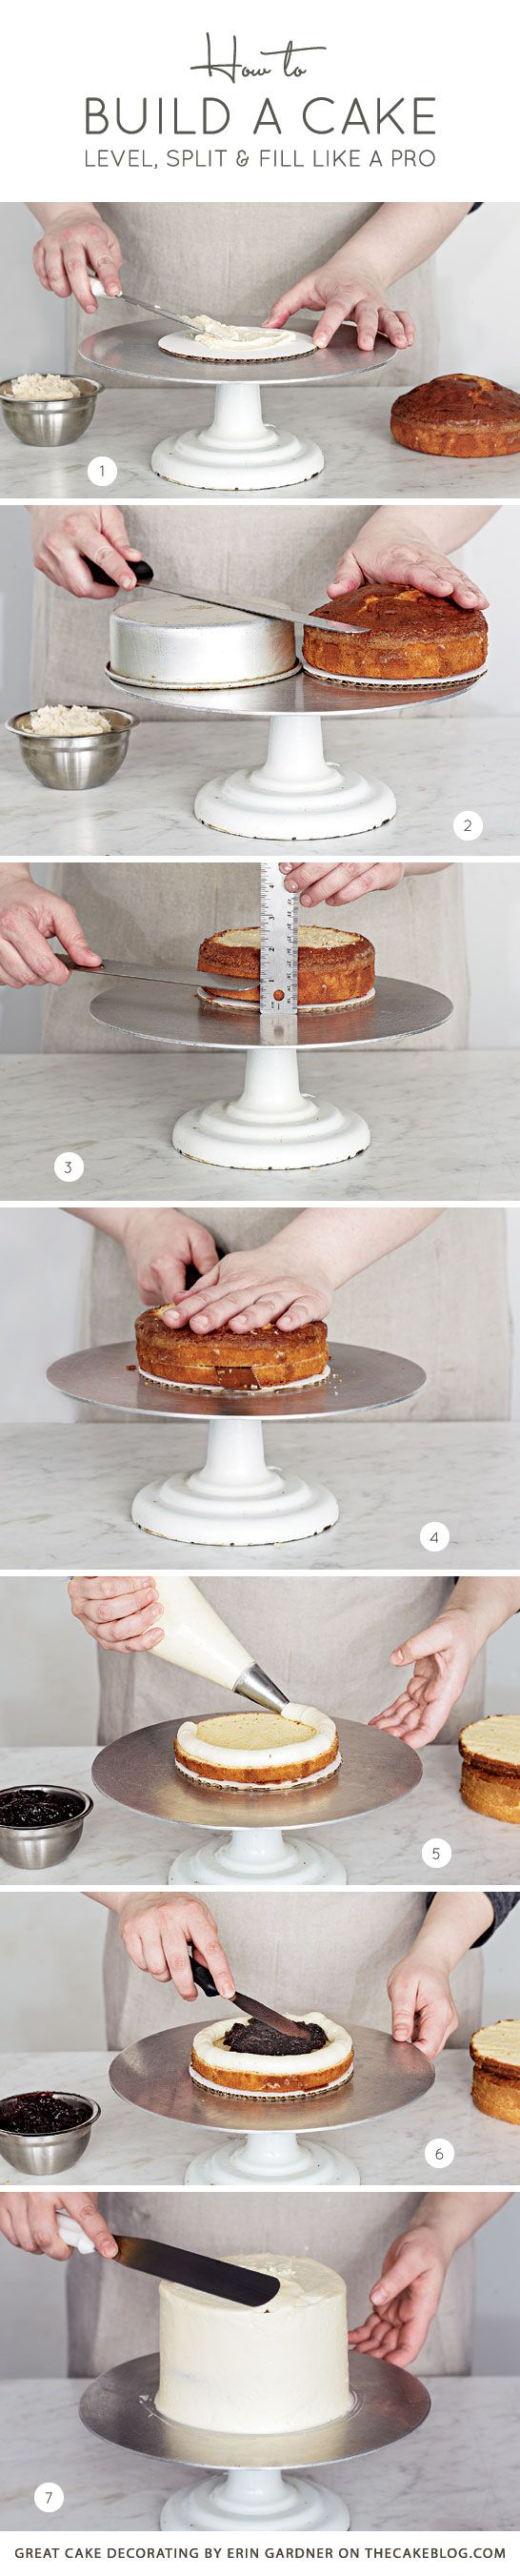 How to Build a Cake | level, split and fill like a pro | Great Cake Decorating by Erin Gardner on TheCakeBlog.com